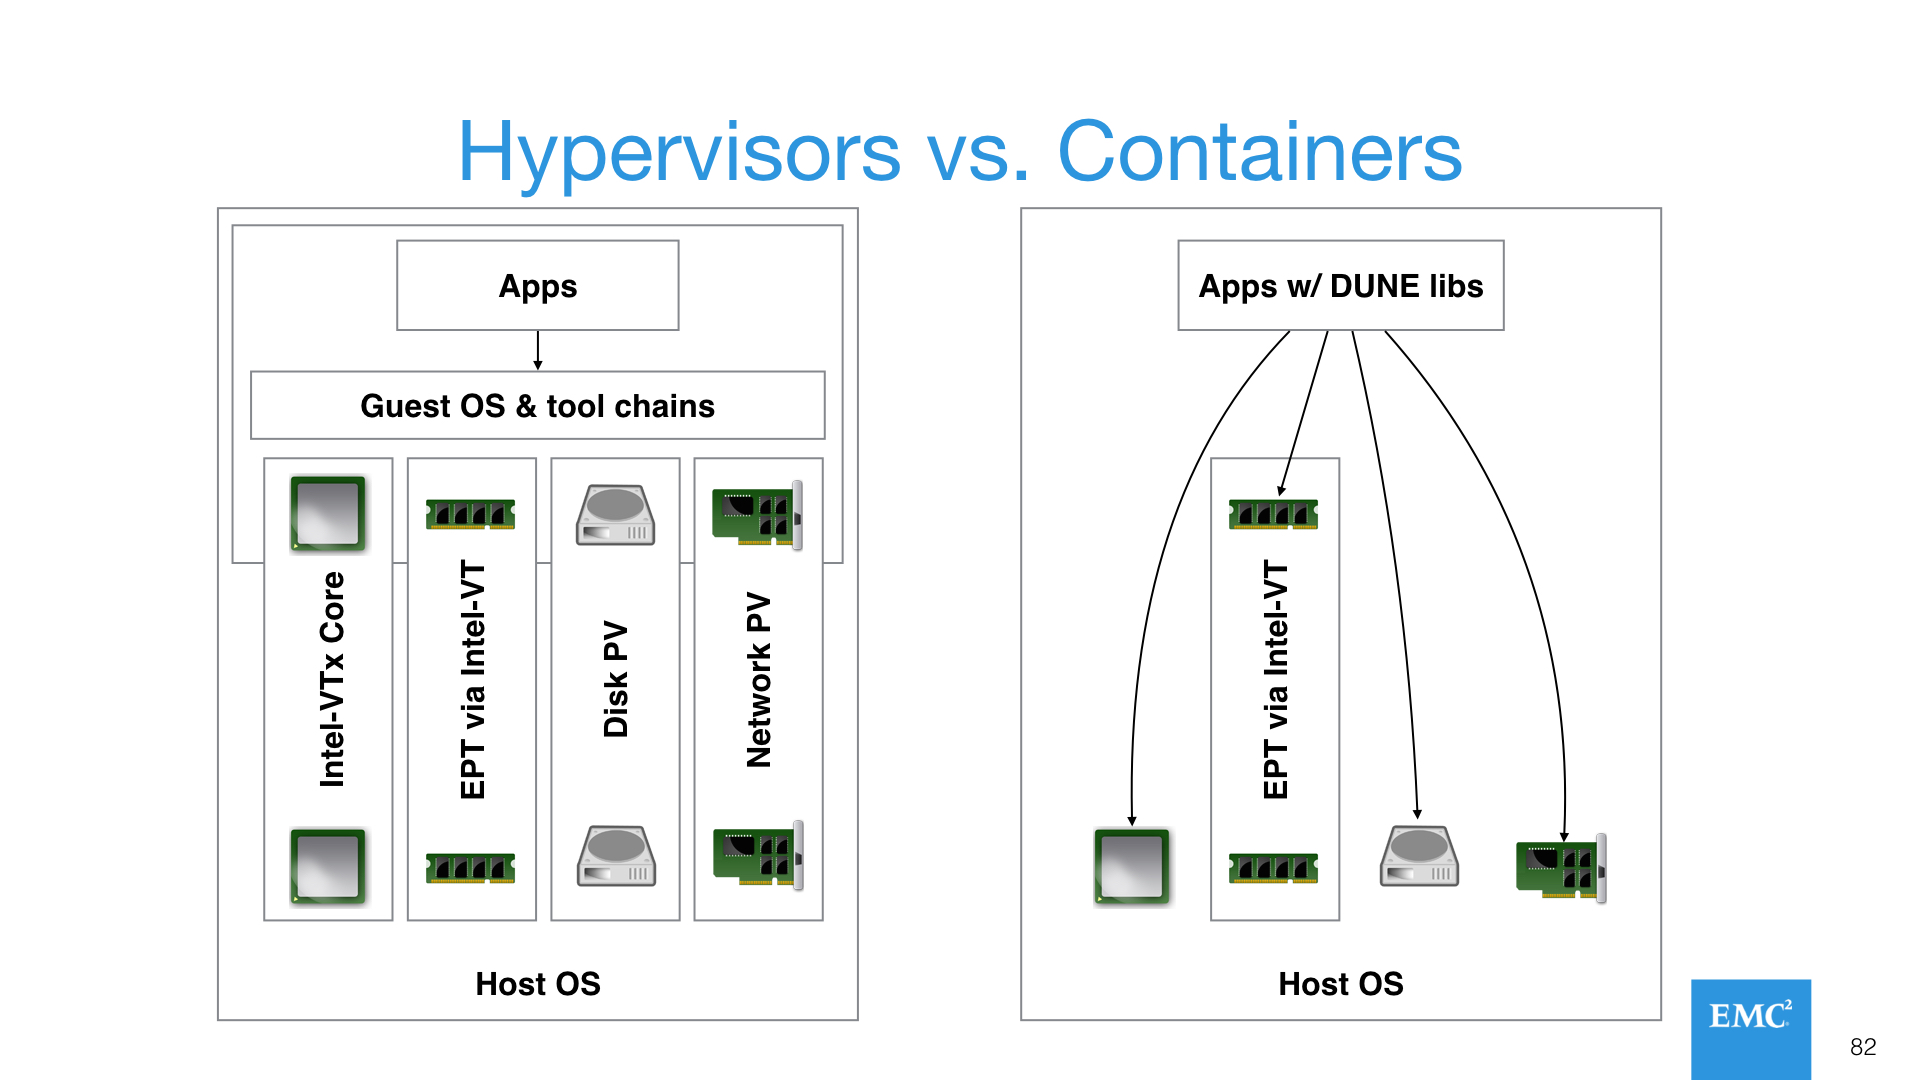 Hypervisors vs. Containers